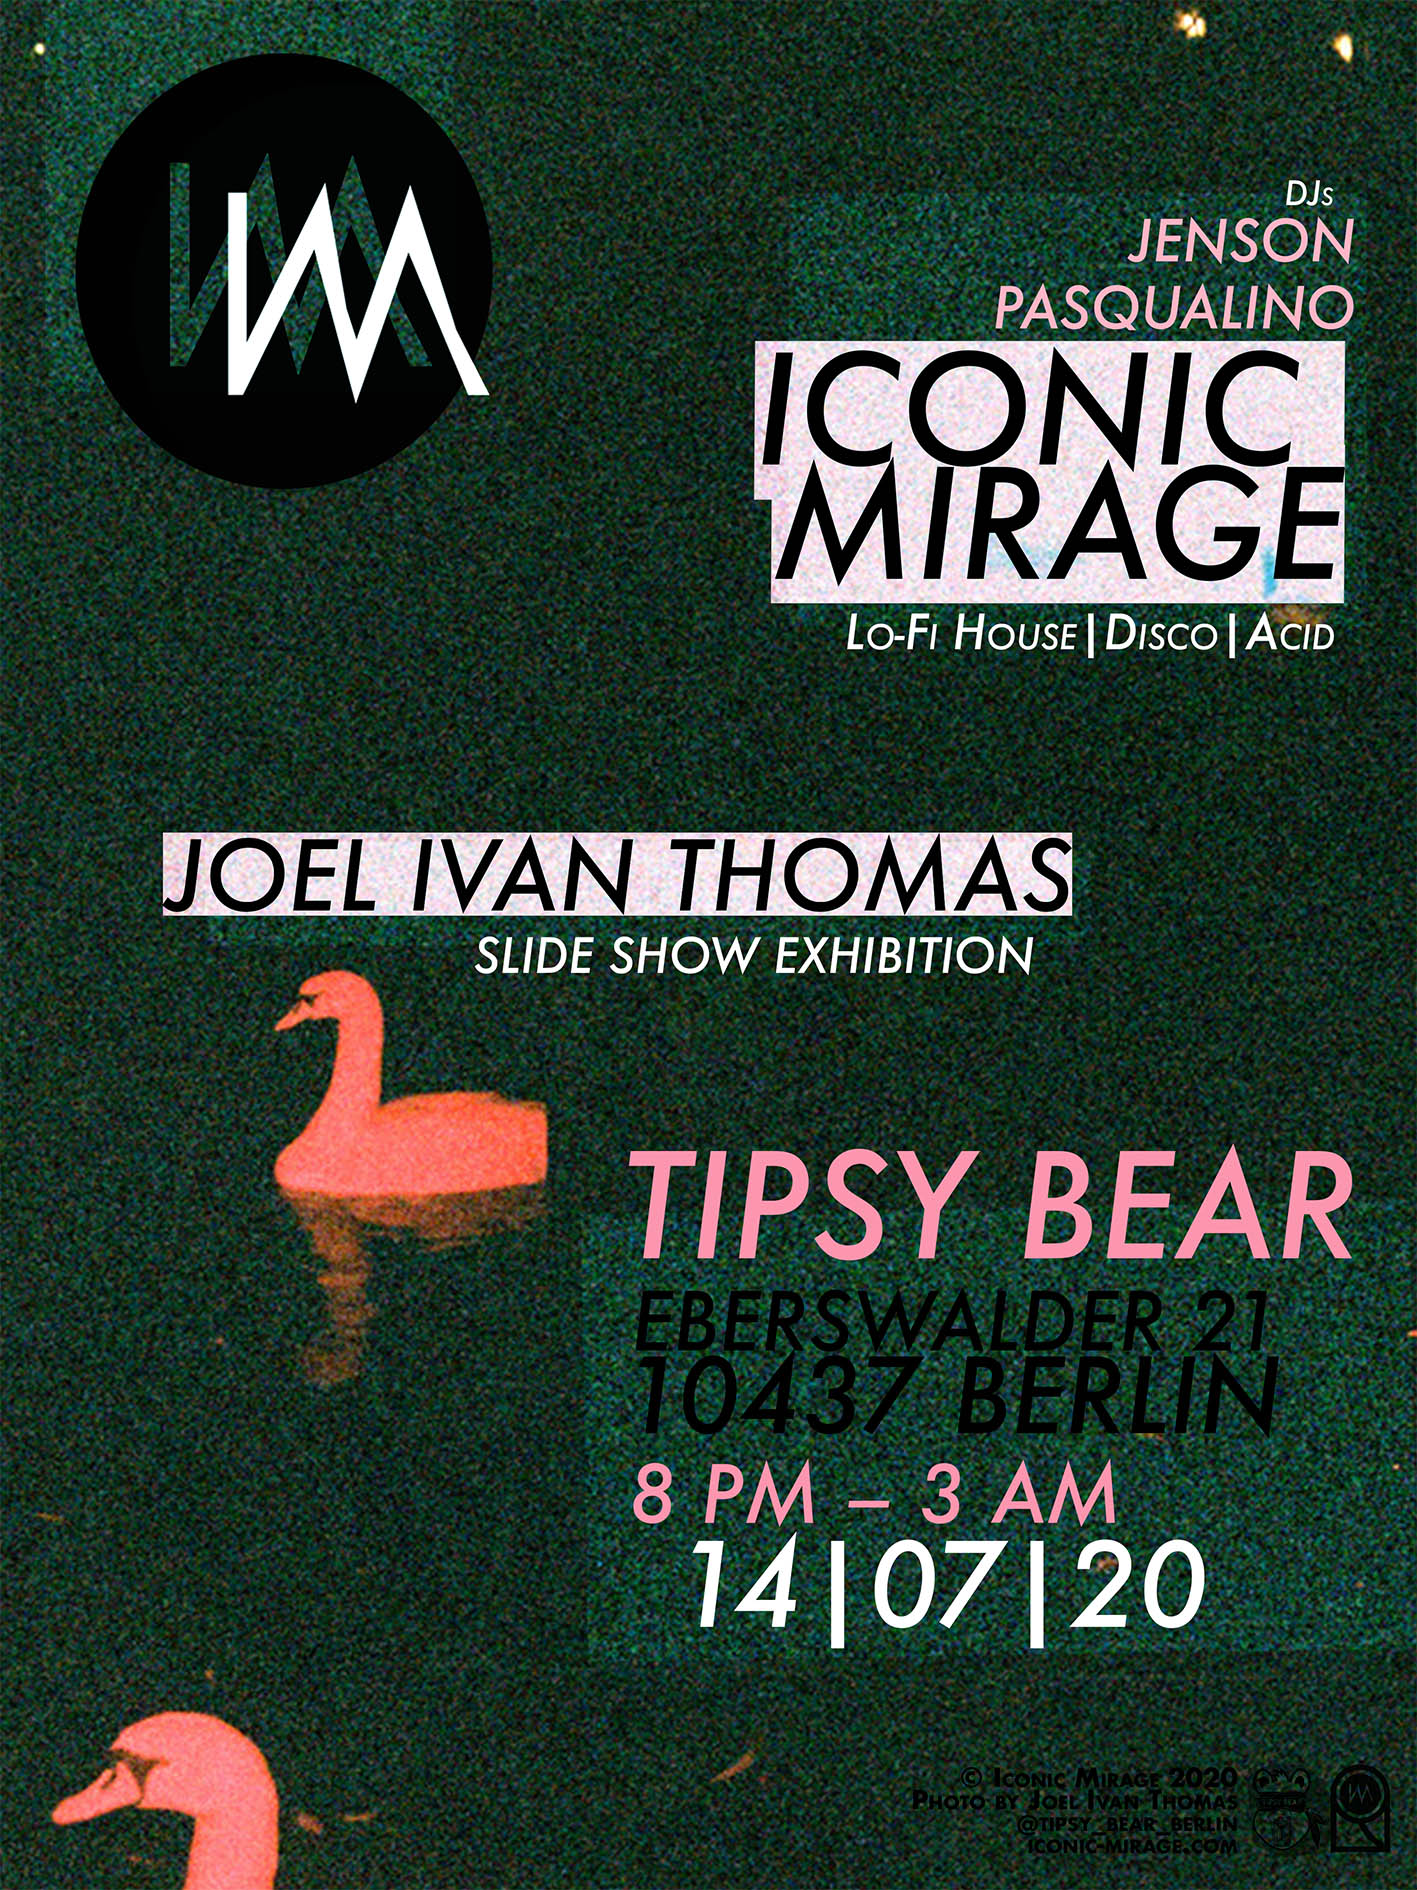 iconic mirage joel ivan thomas